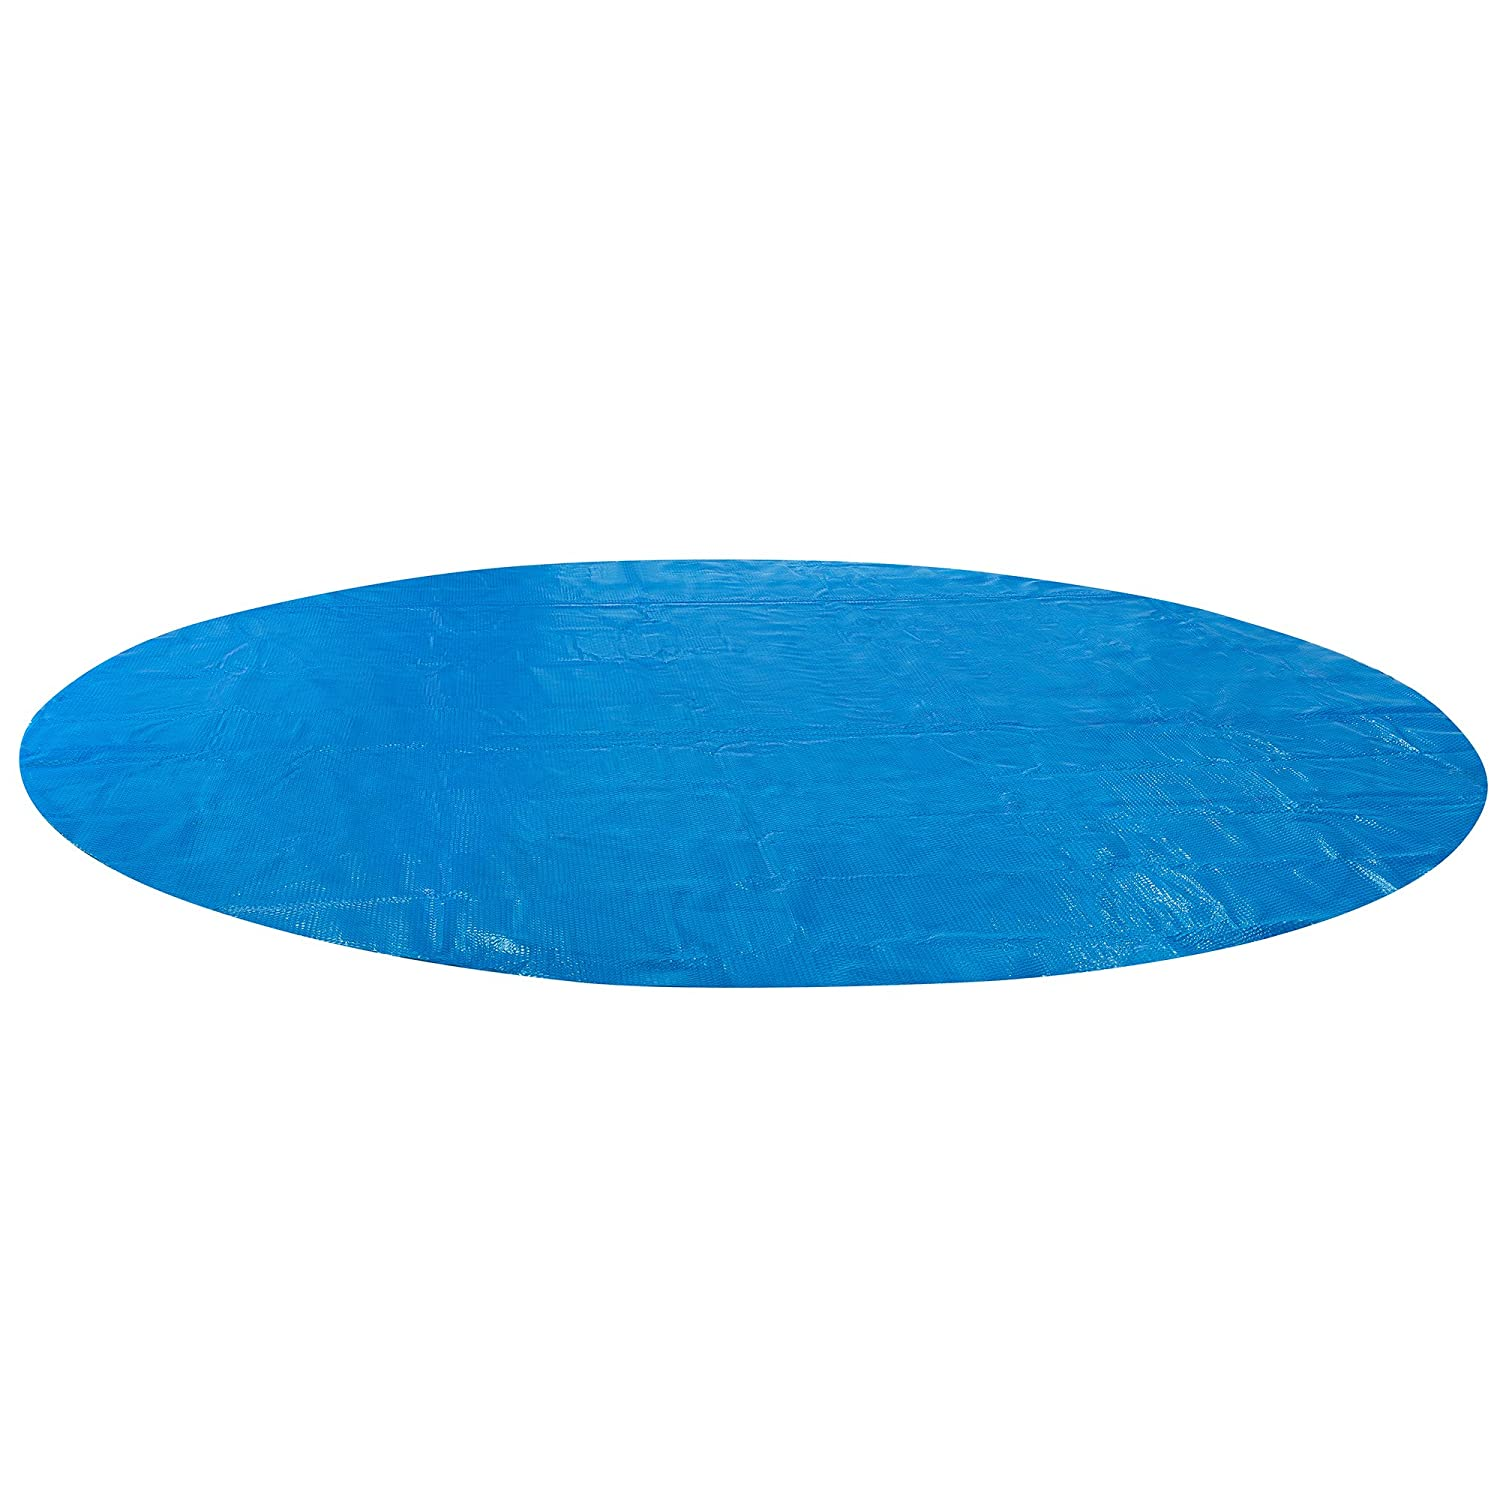 Arebos Solar Pool Cover in different sizes/round or rectangular/blue/400 micron/12ft (3.60m) Canbolat Vertriebs GmbH